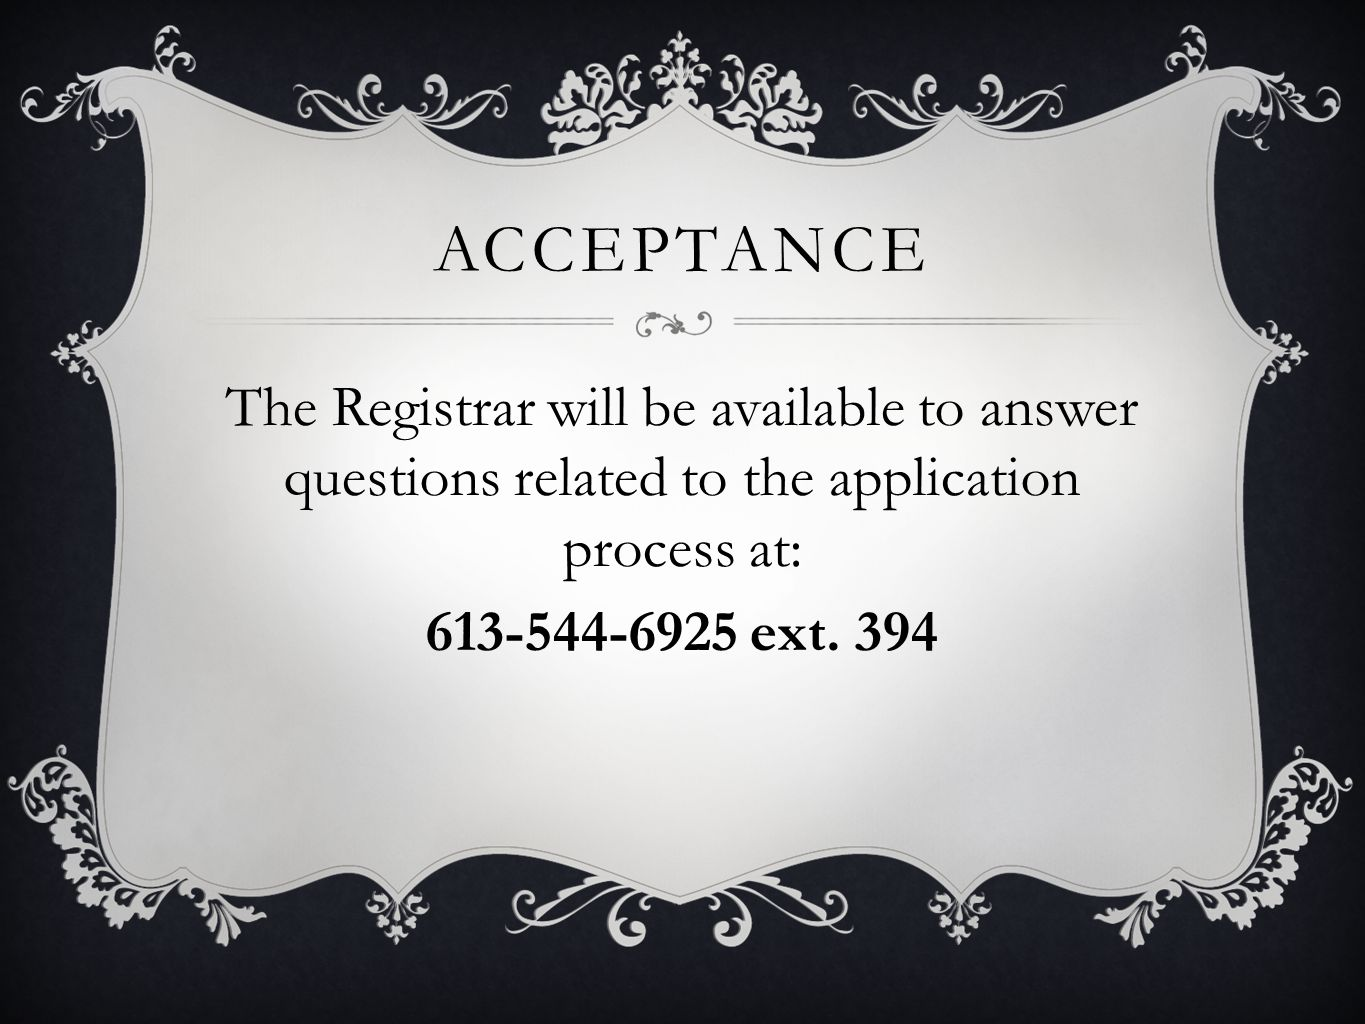 acceptance The Registrar will be available to answer questions related to the application process at: 613-544-6925 ext.